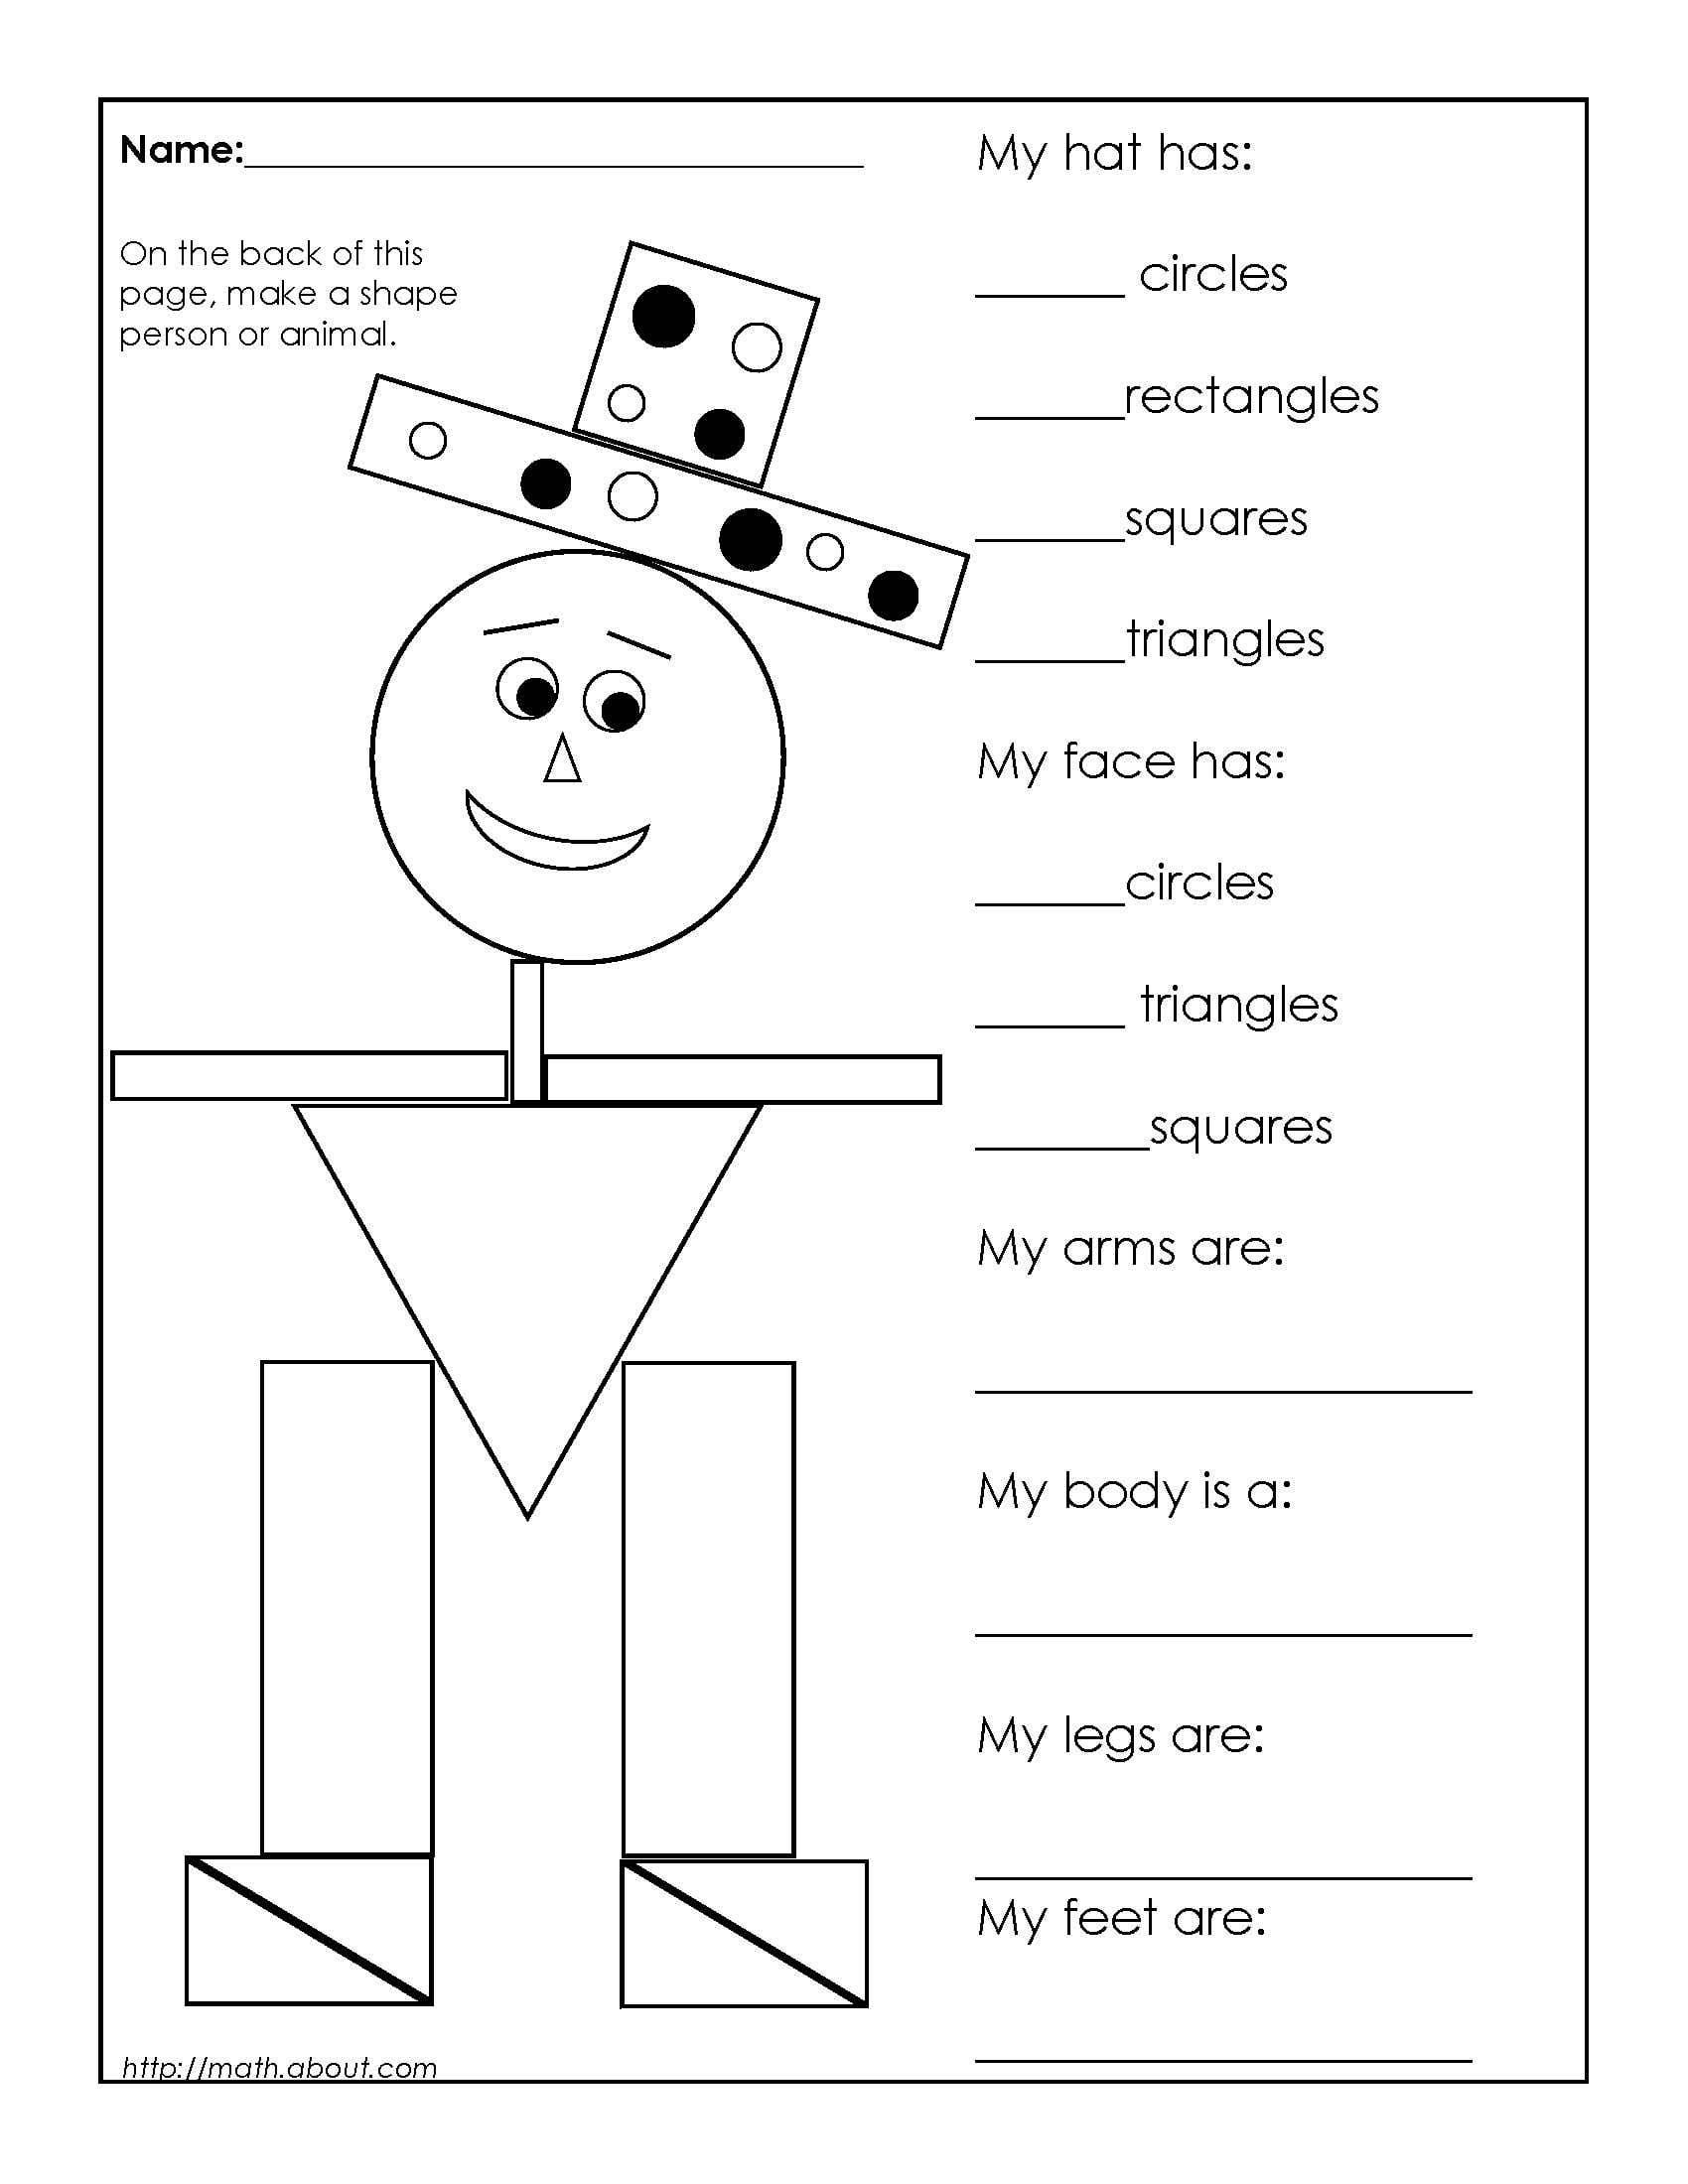 1st Grade Geometry Worksheets For Students First Grade Math Worksheets Geometry Worksheets First Grade Worksheets